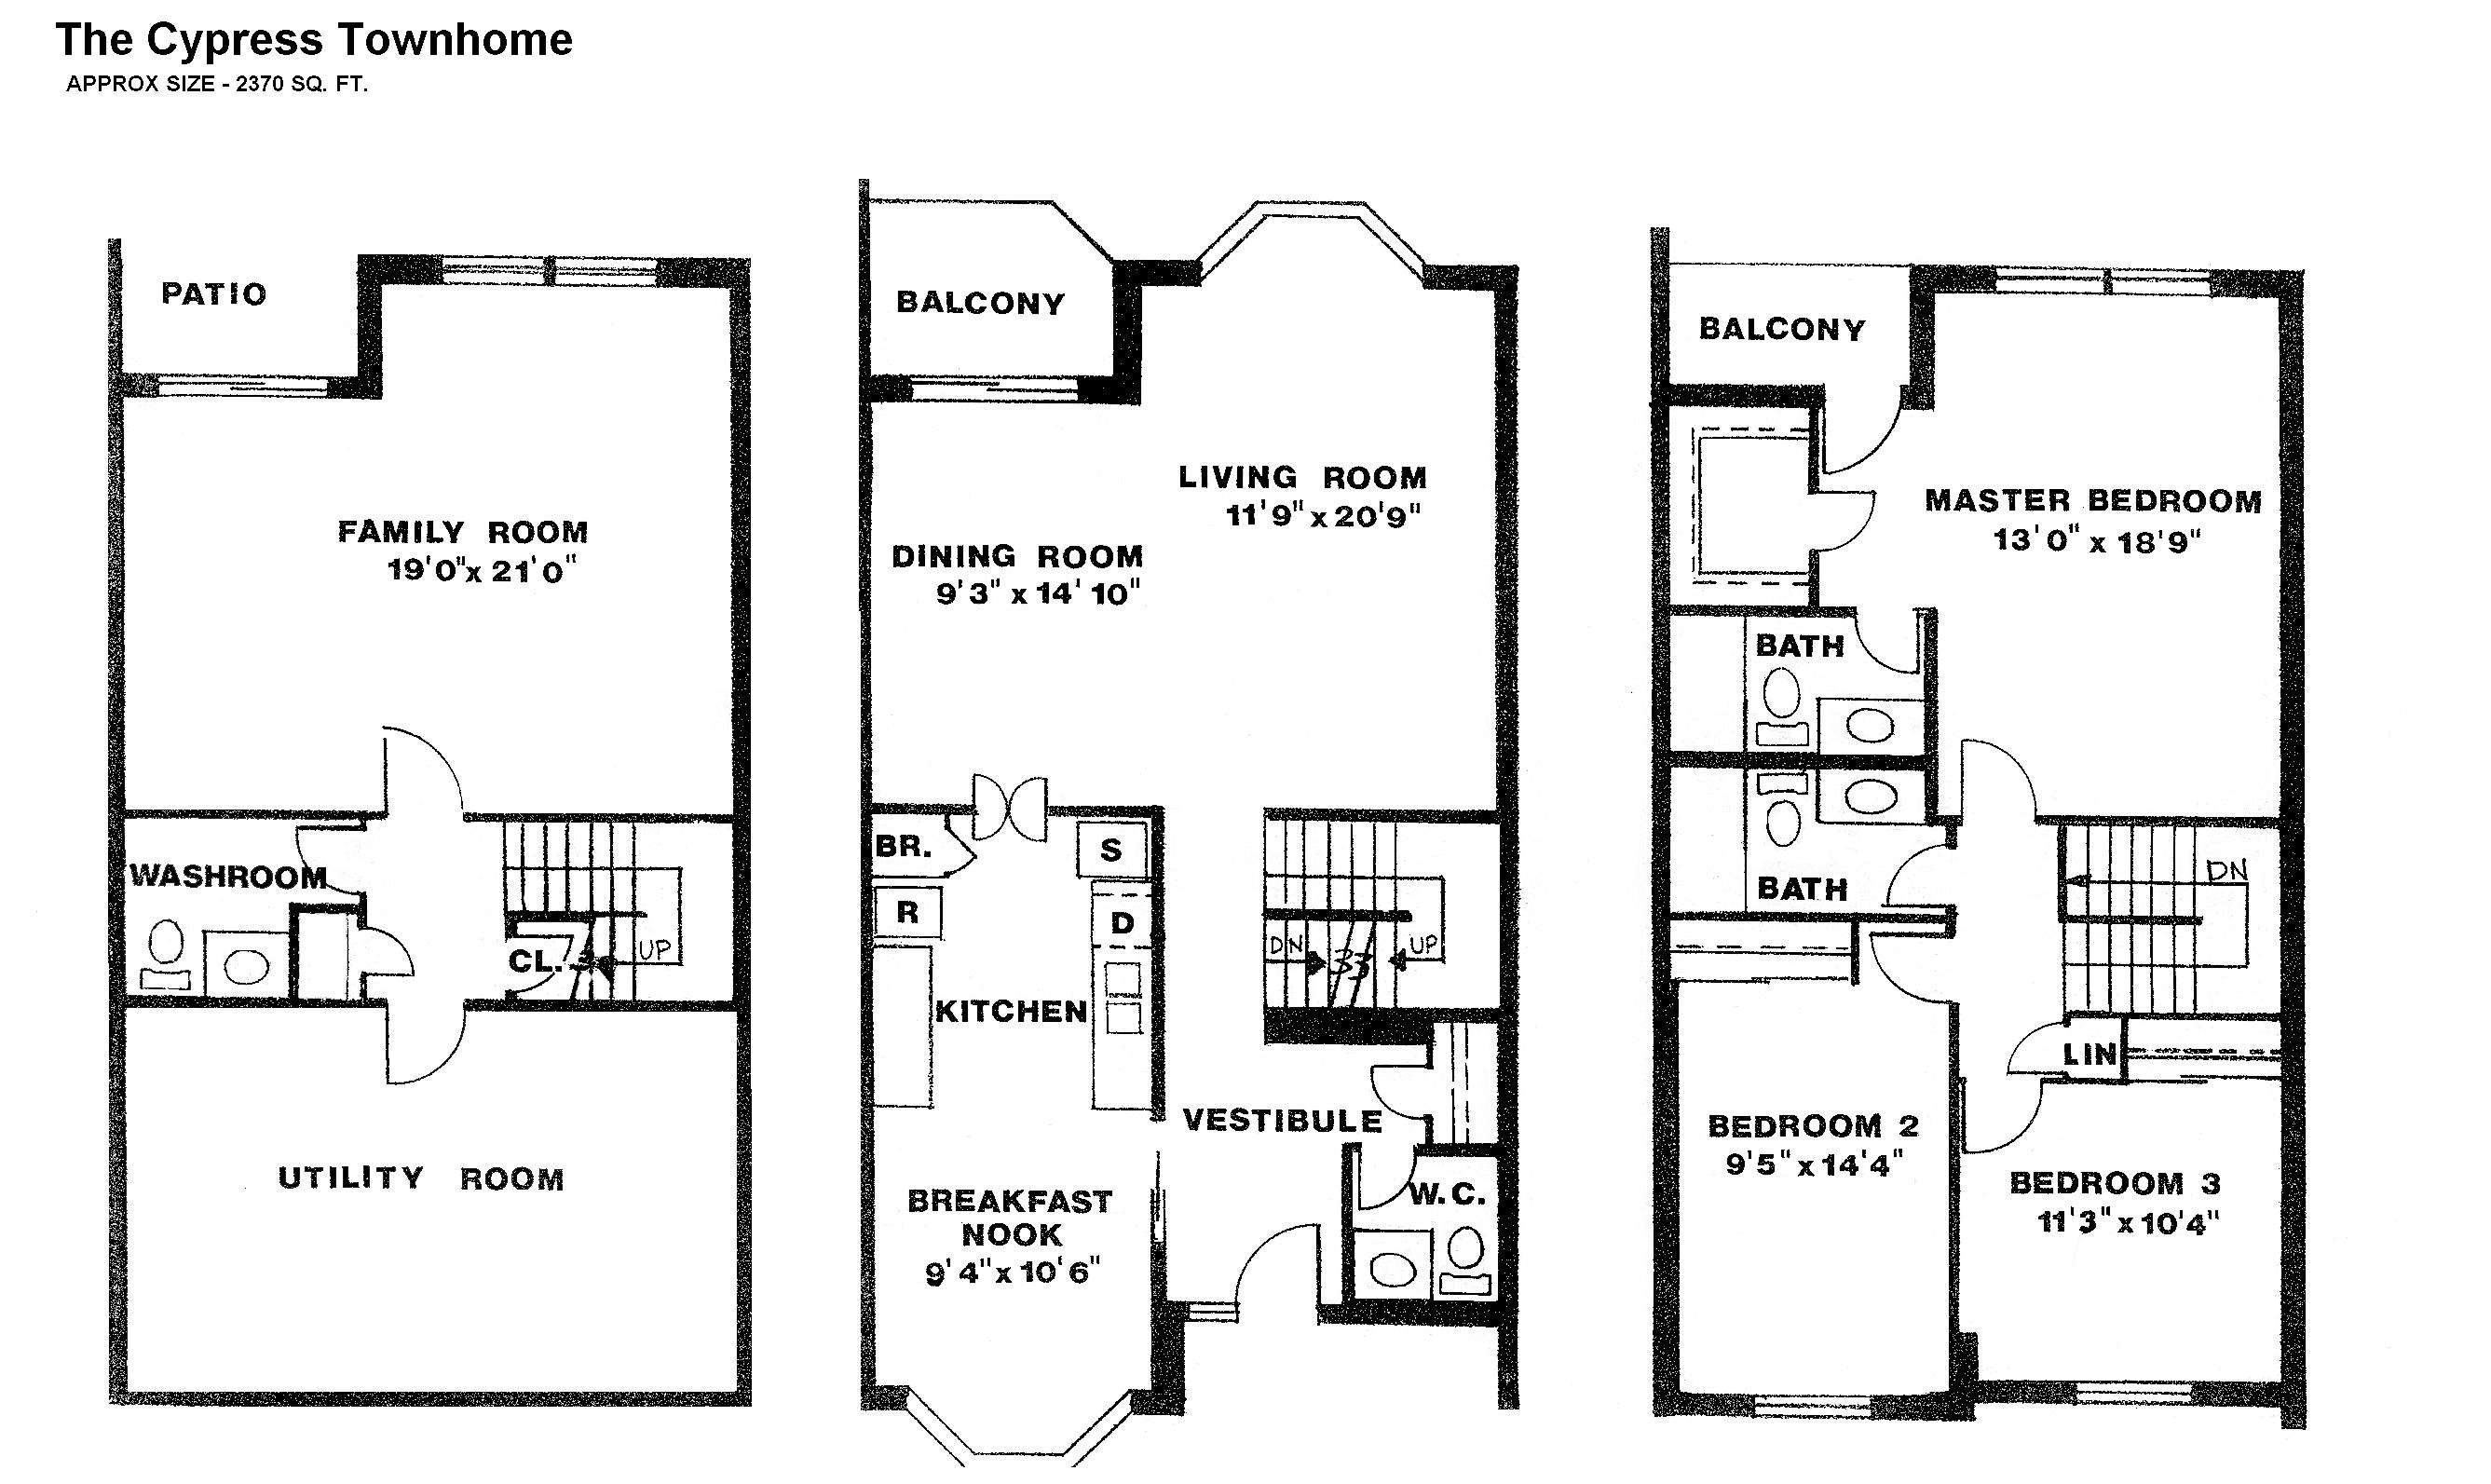 Story Townhouse Floor Plans Drewloholdings Apartments